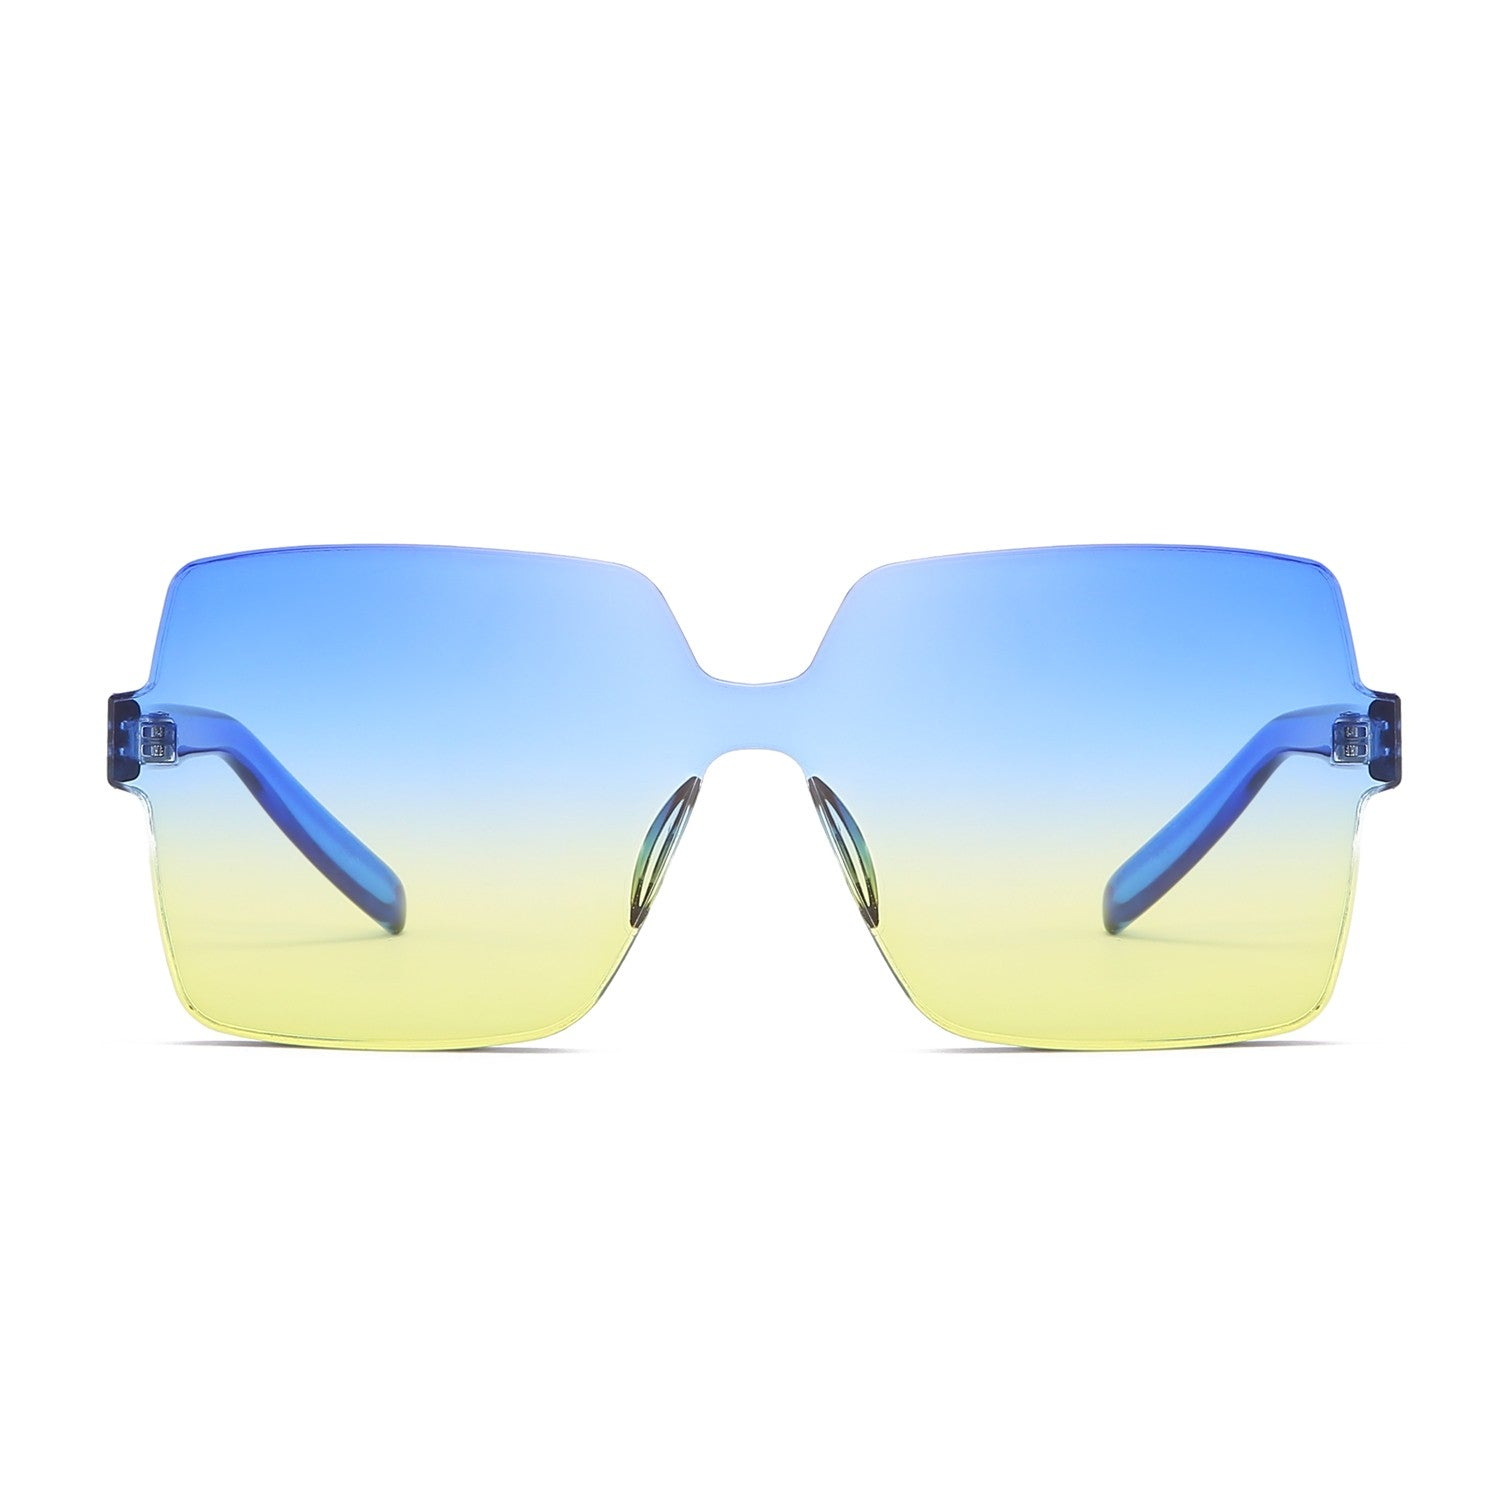 Oversized Rimless Square Sunglasses - Unisex